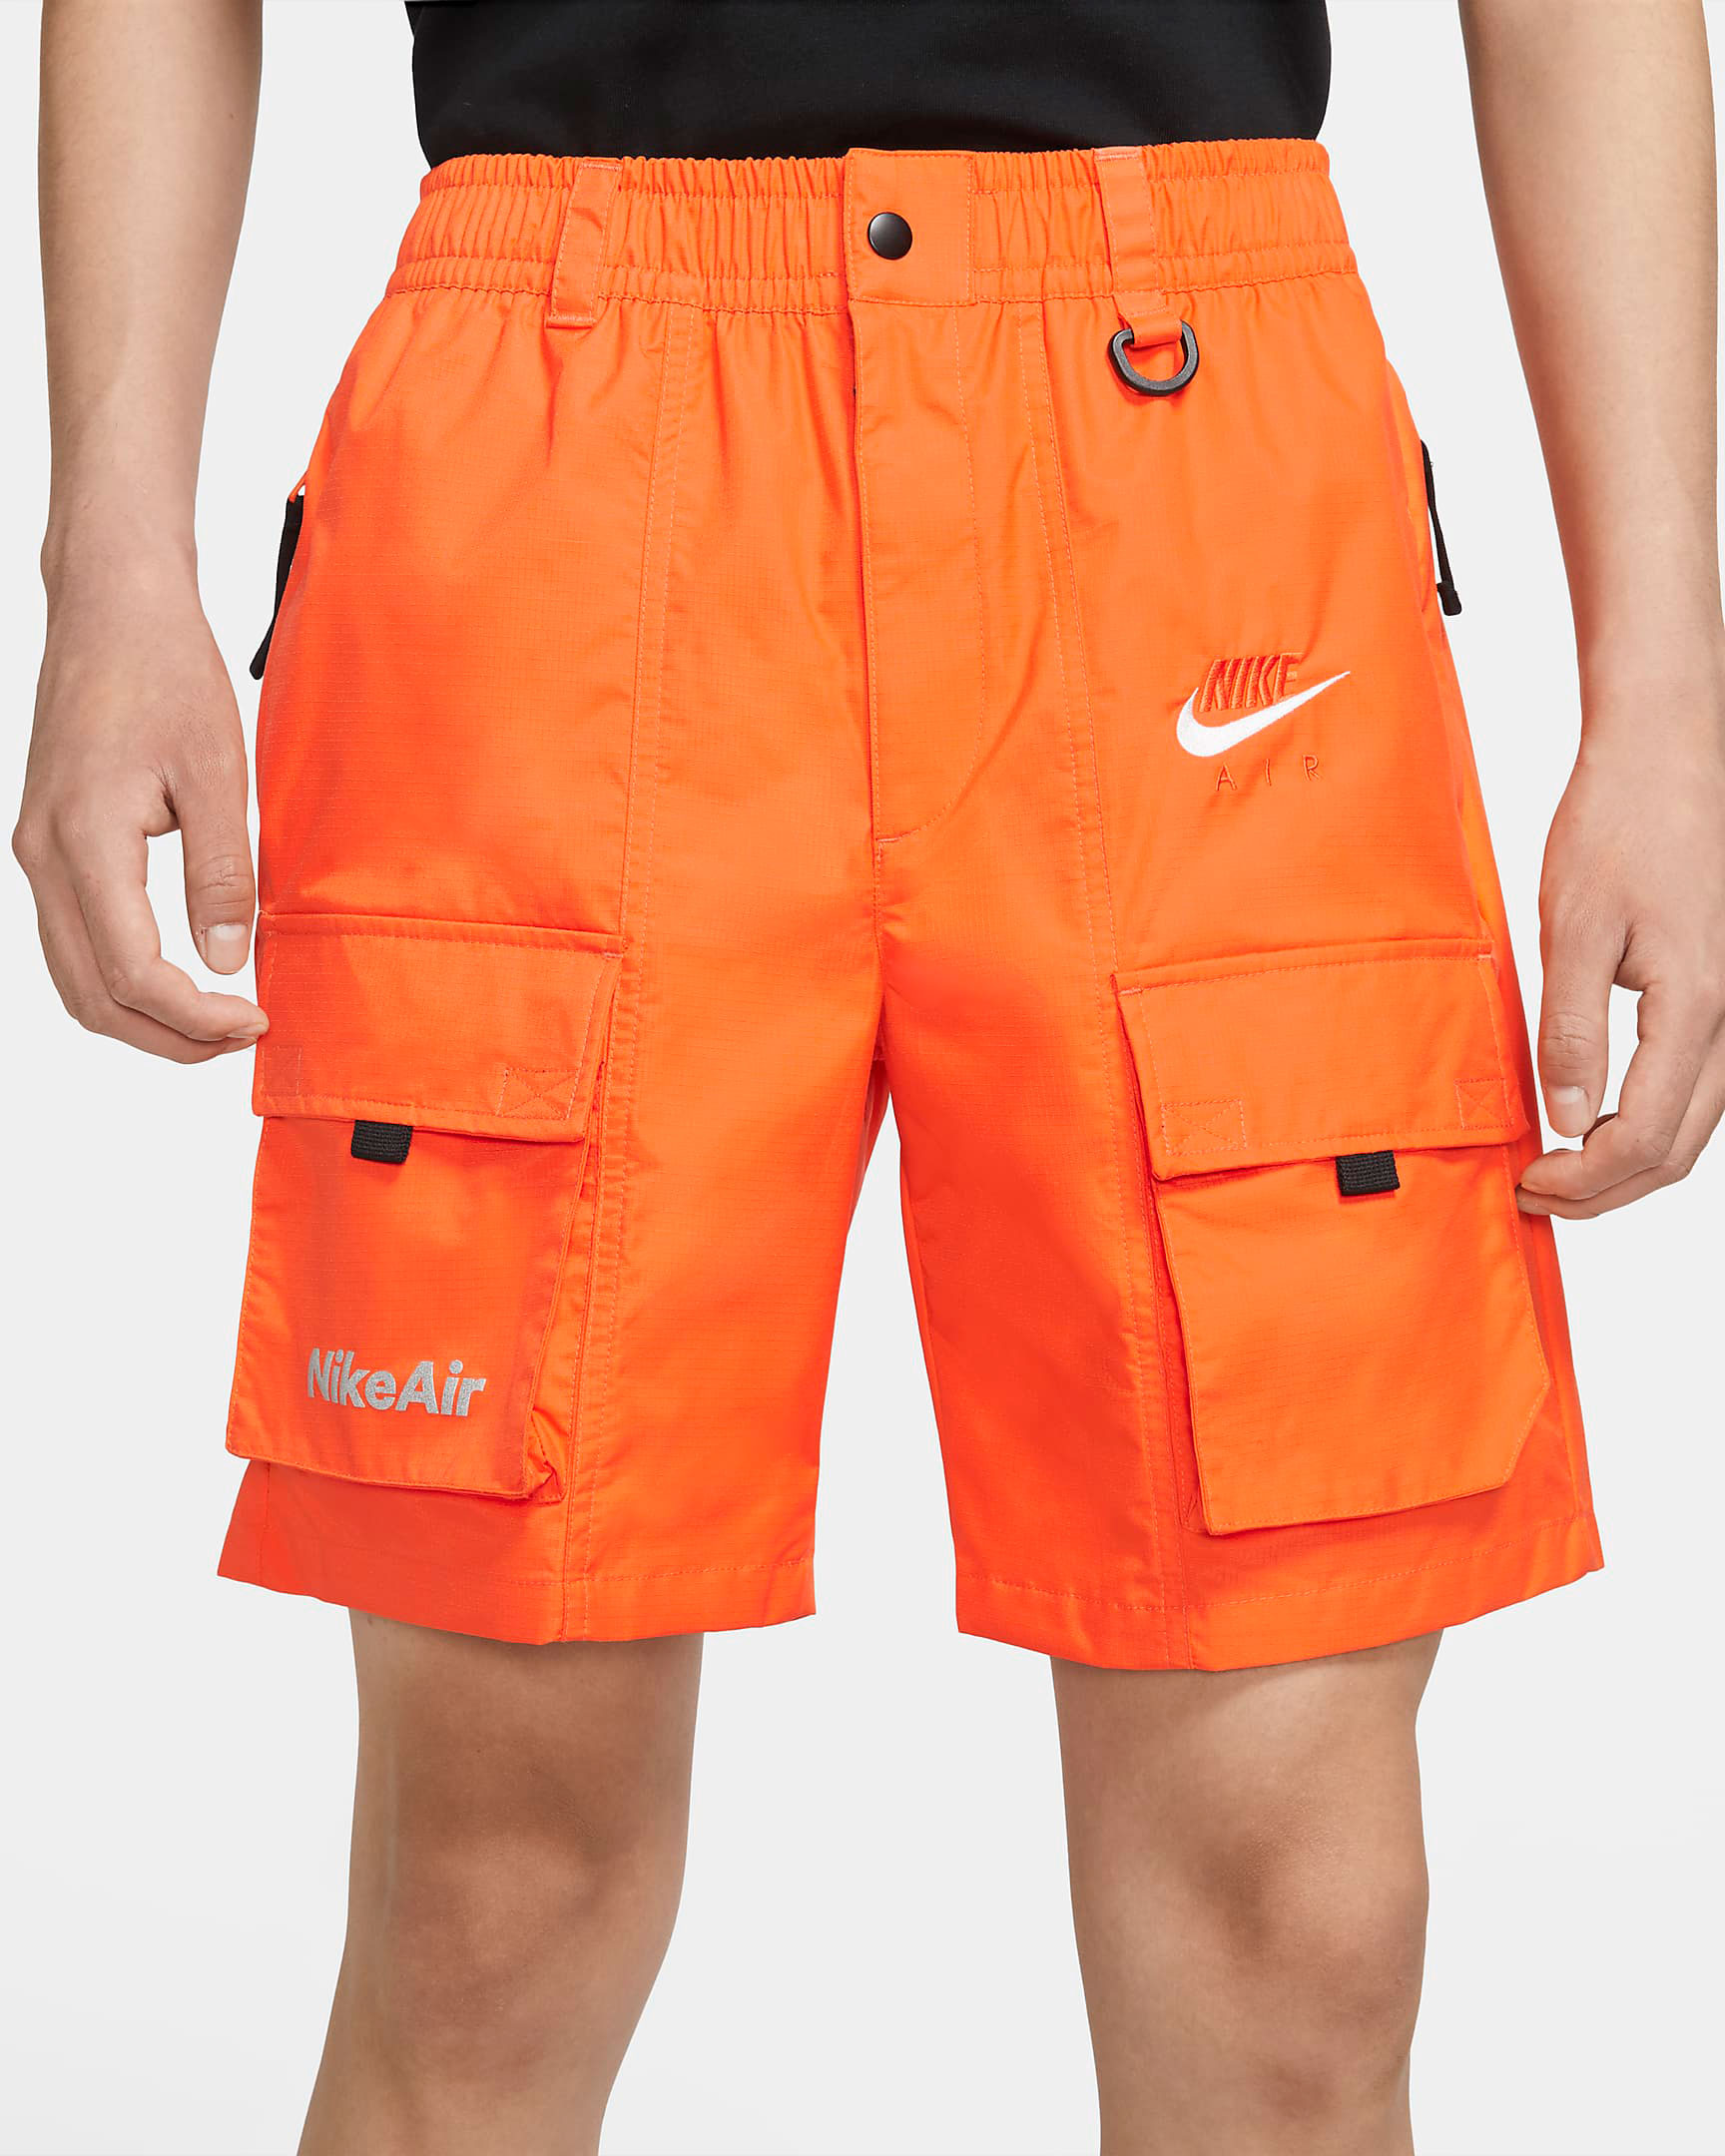 nike-air-shorts-orange